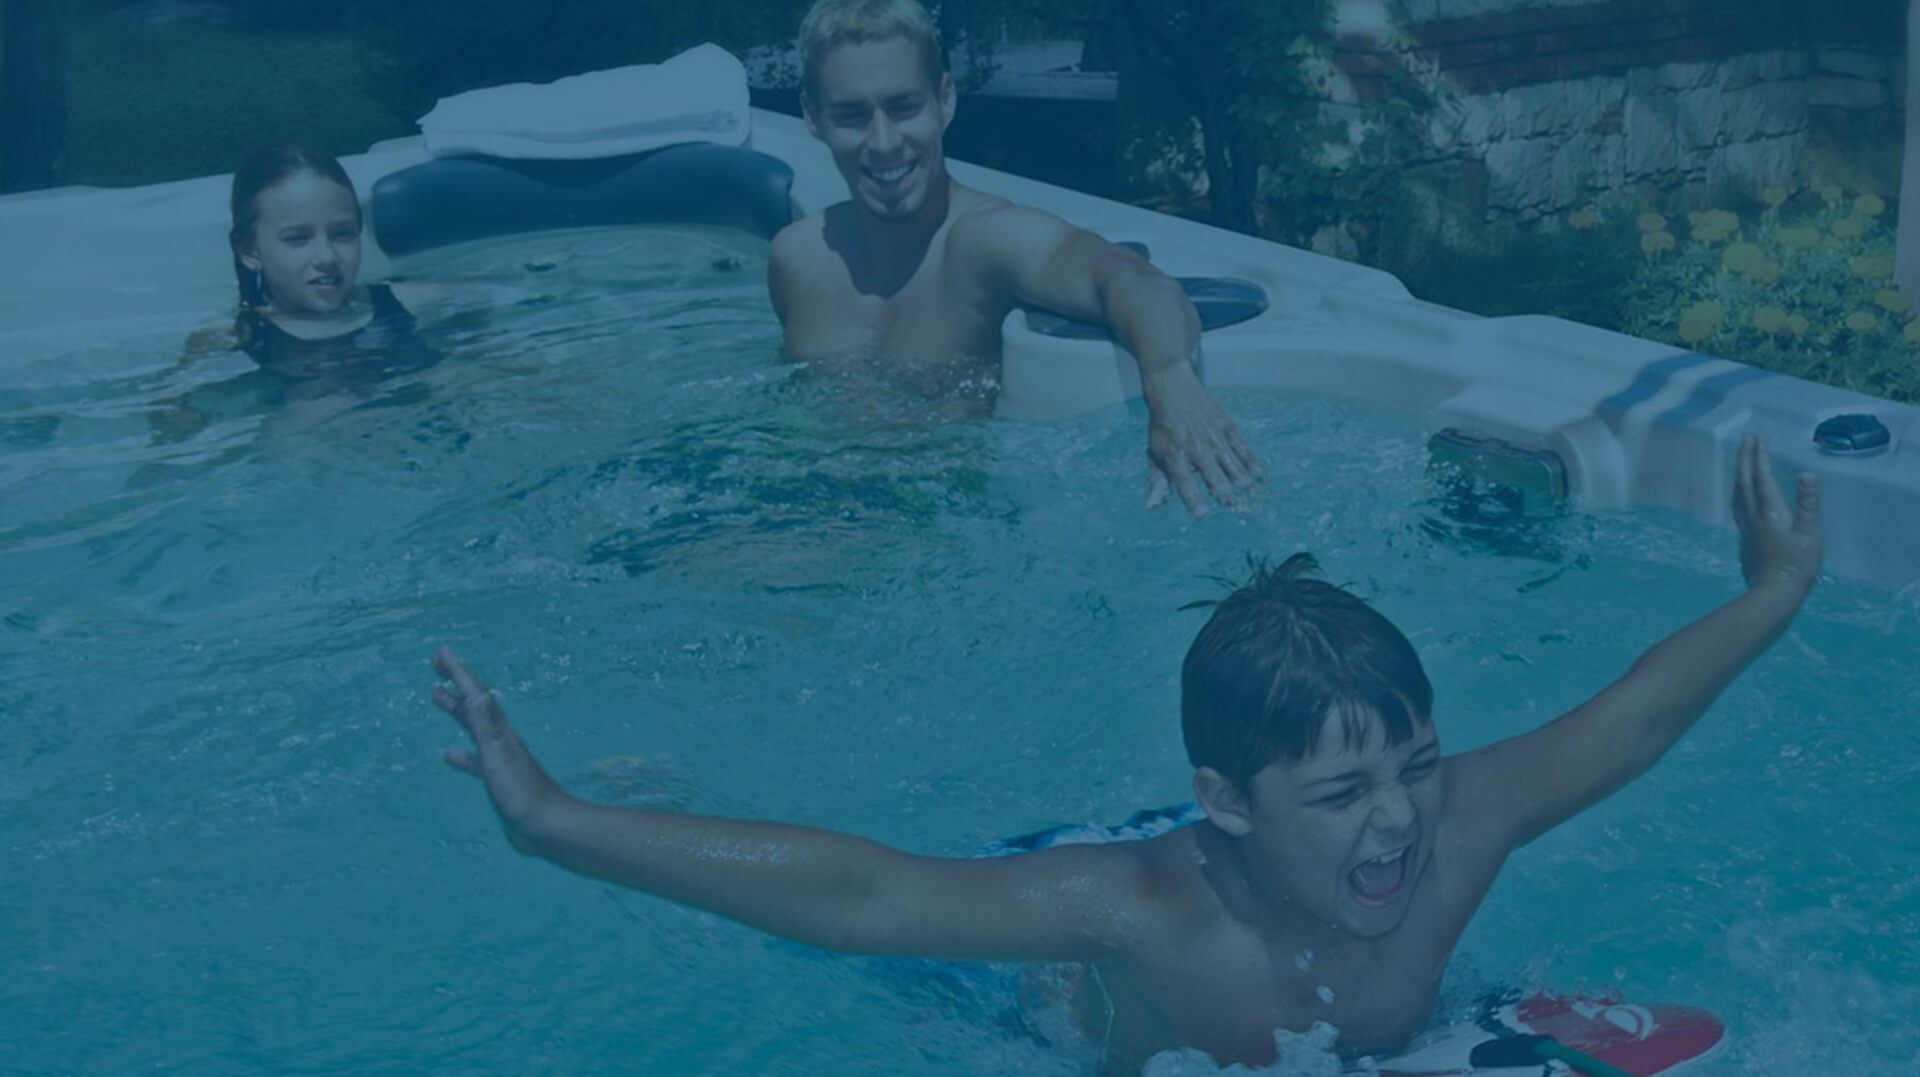 Top five reasons to choose a swim spa over a swimming pool